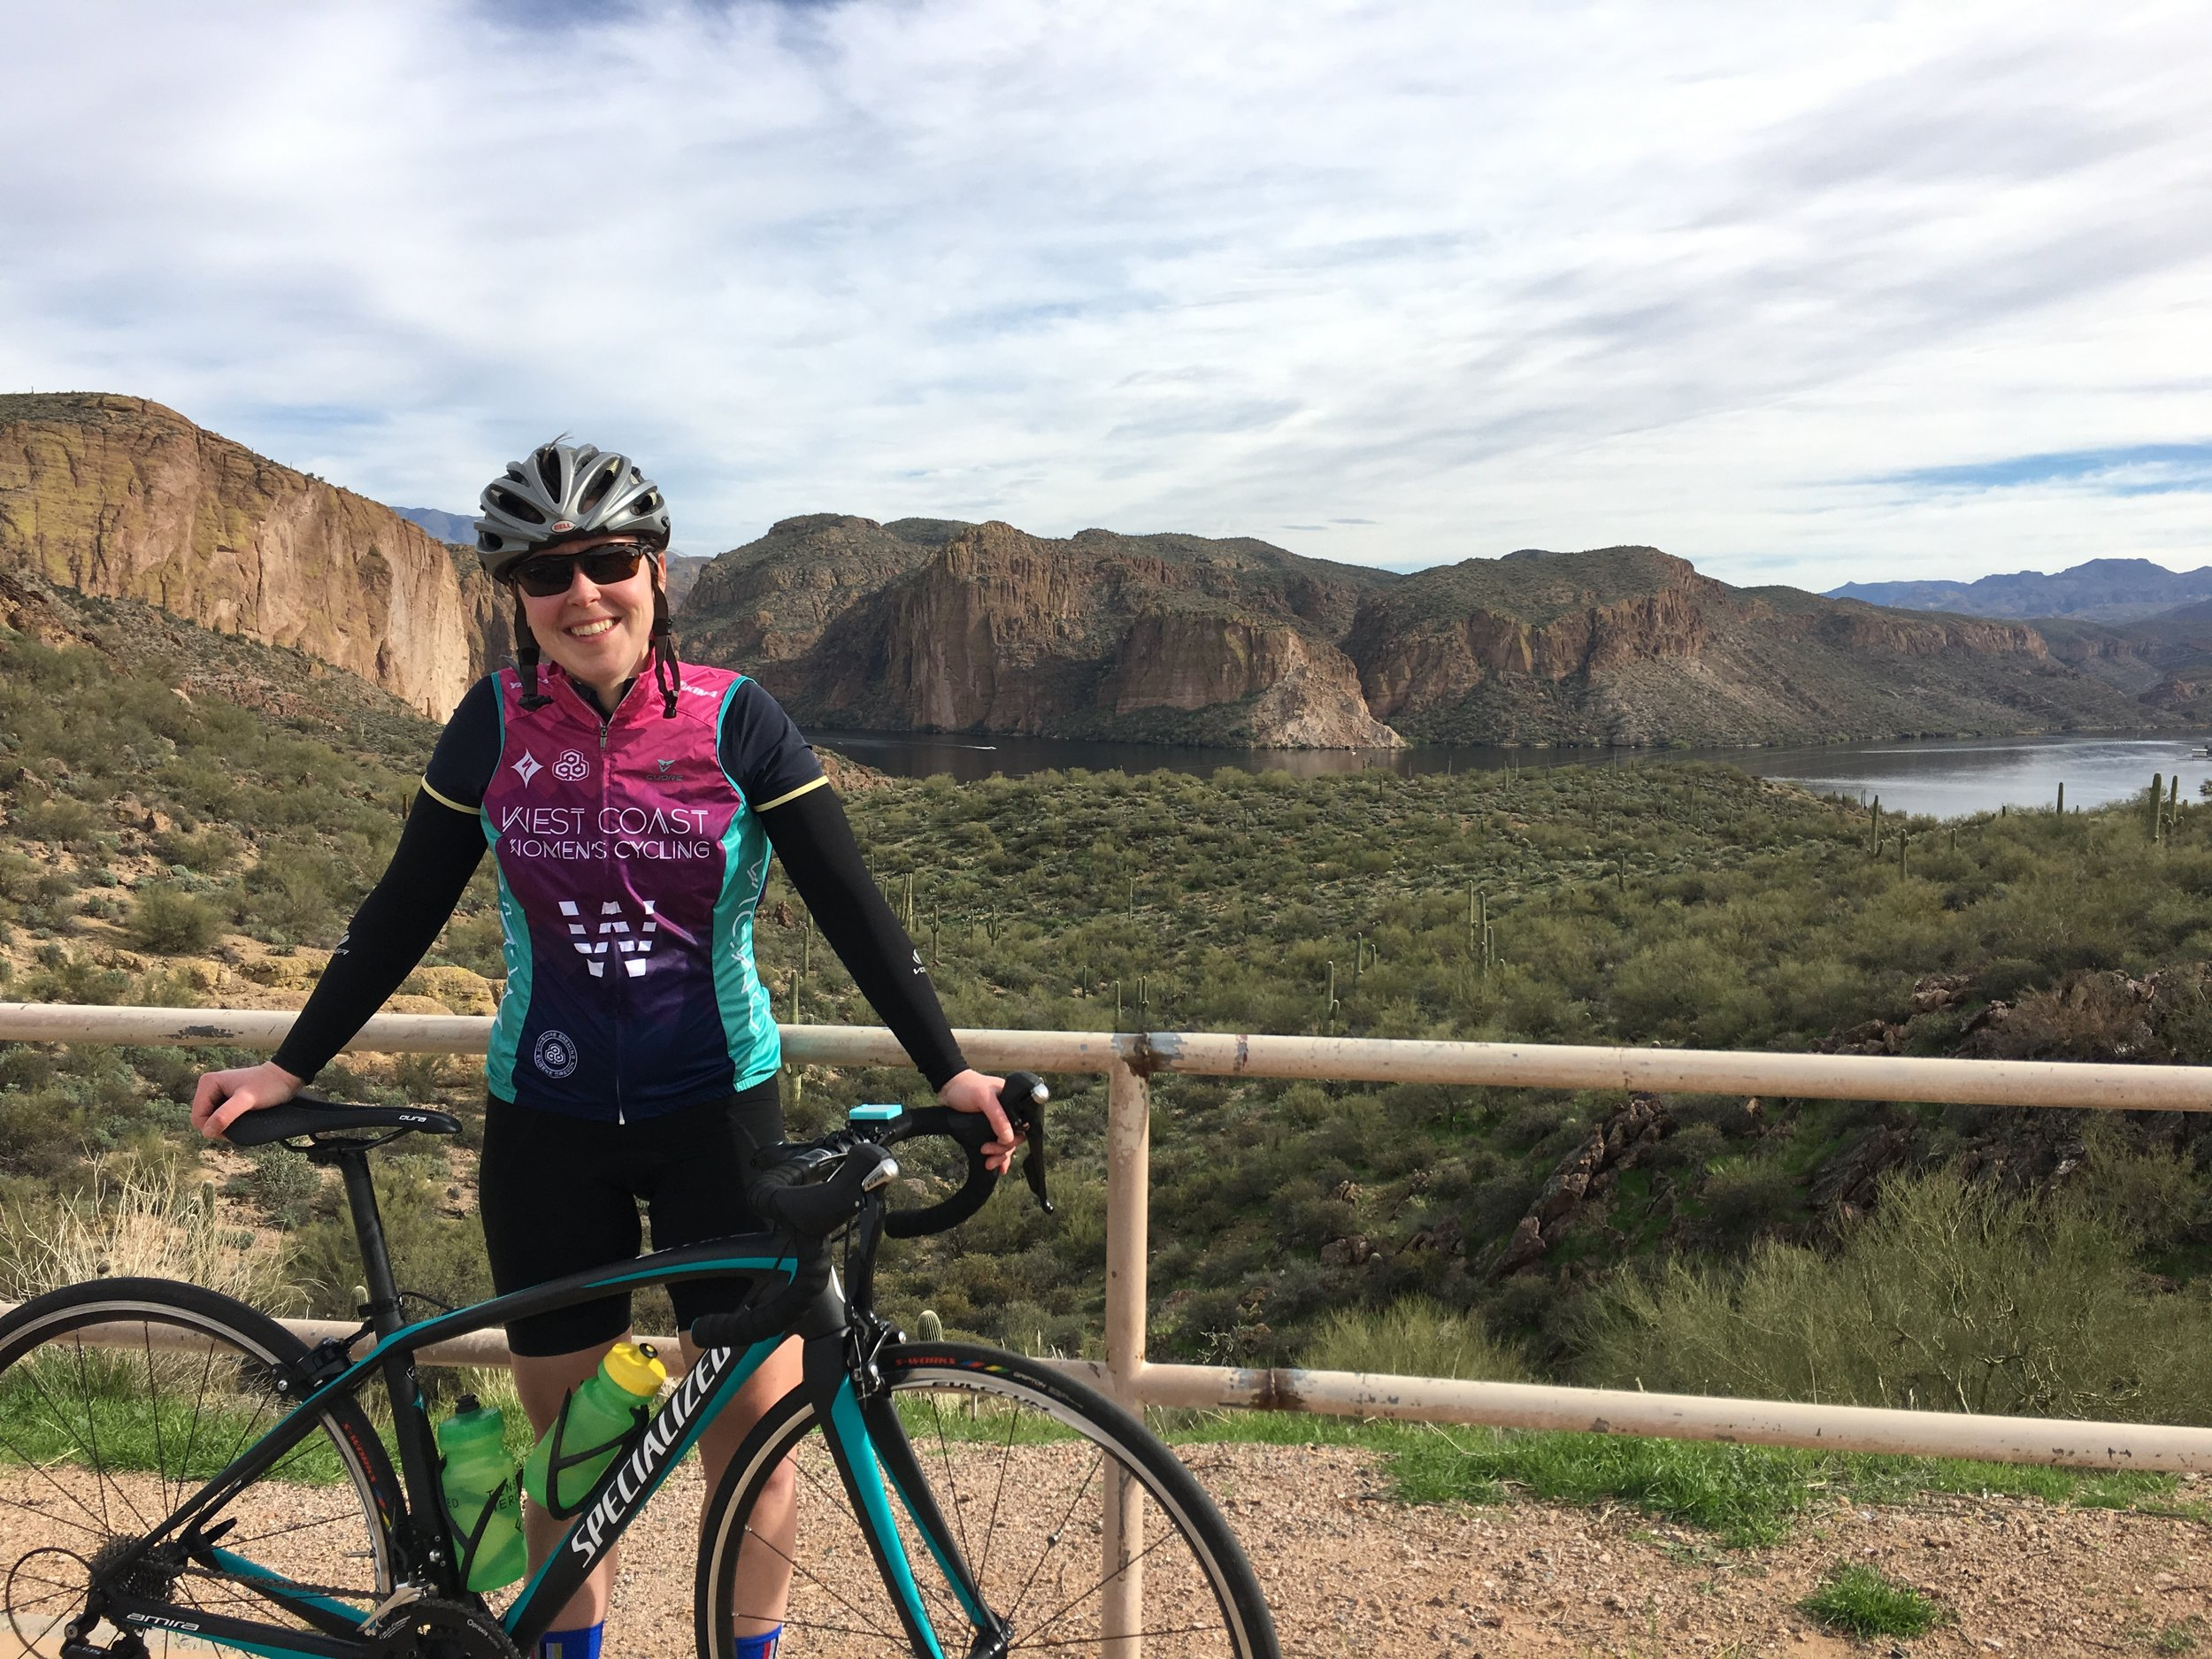 Christine found summer a little earlier than the rest of us - here she is down in Phoenix this past winter. The ride was out of Lost Duchman State Park to Tortilla Flat.  Here's to finding longer summers!